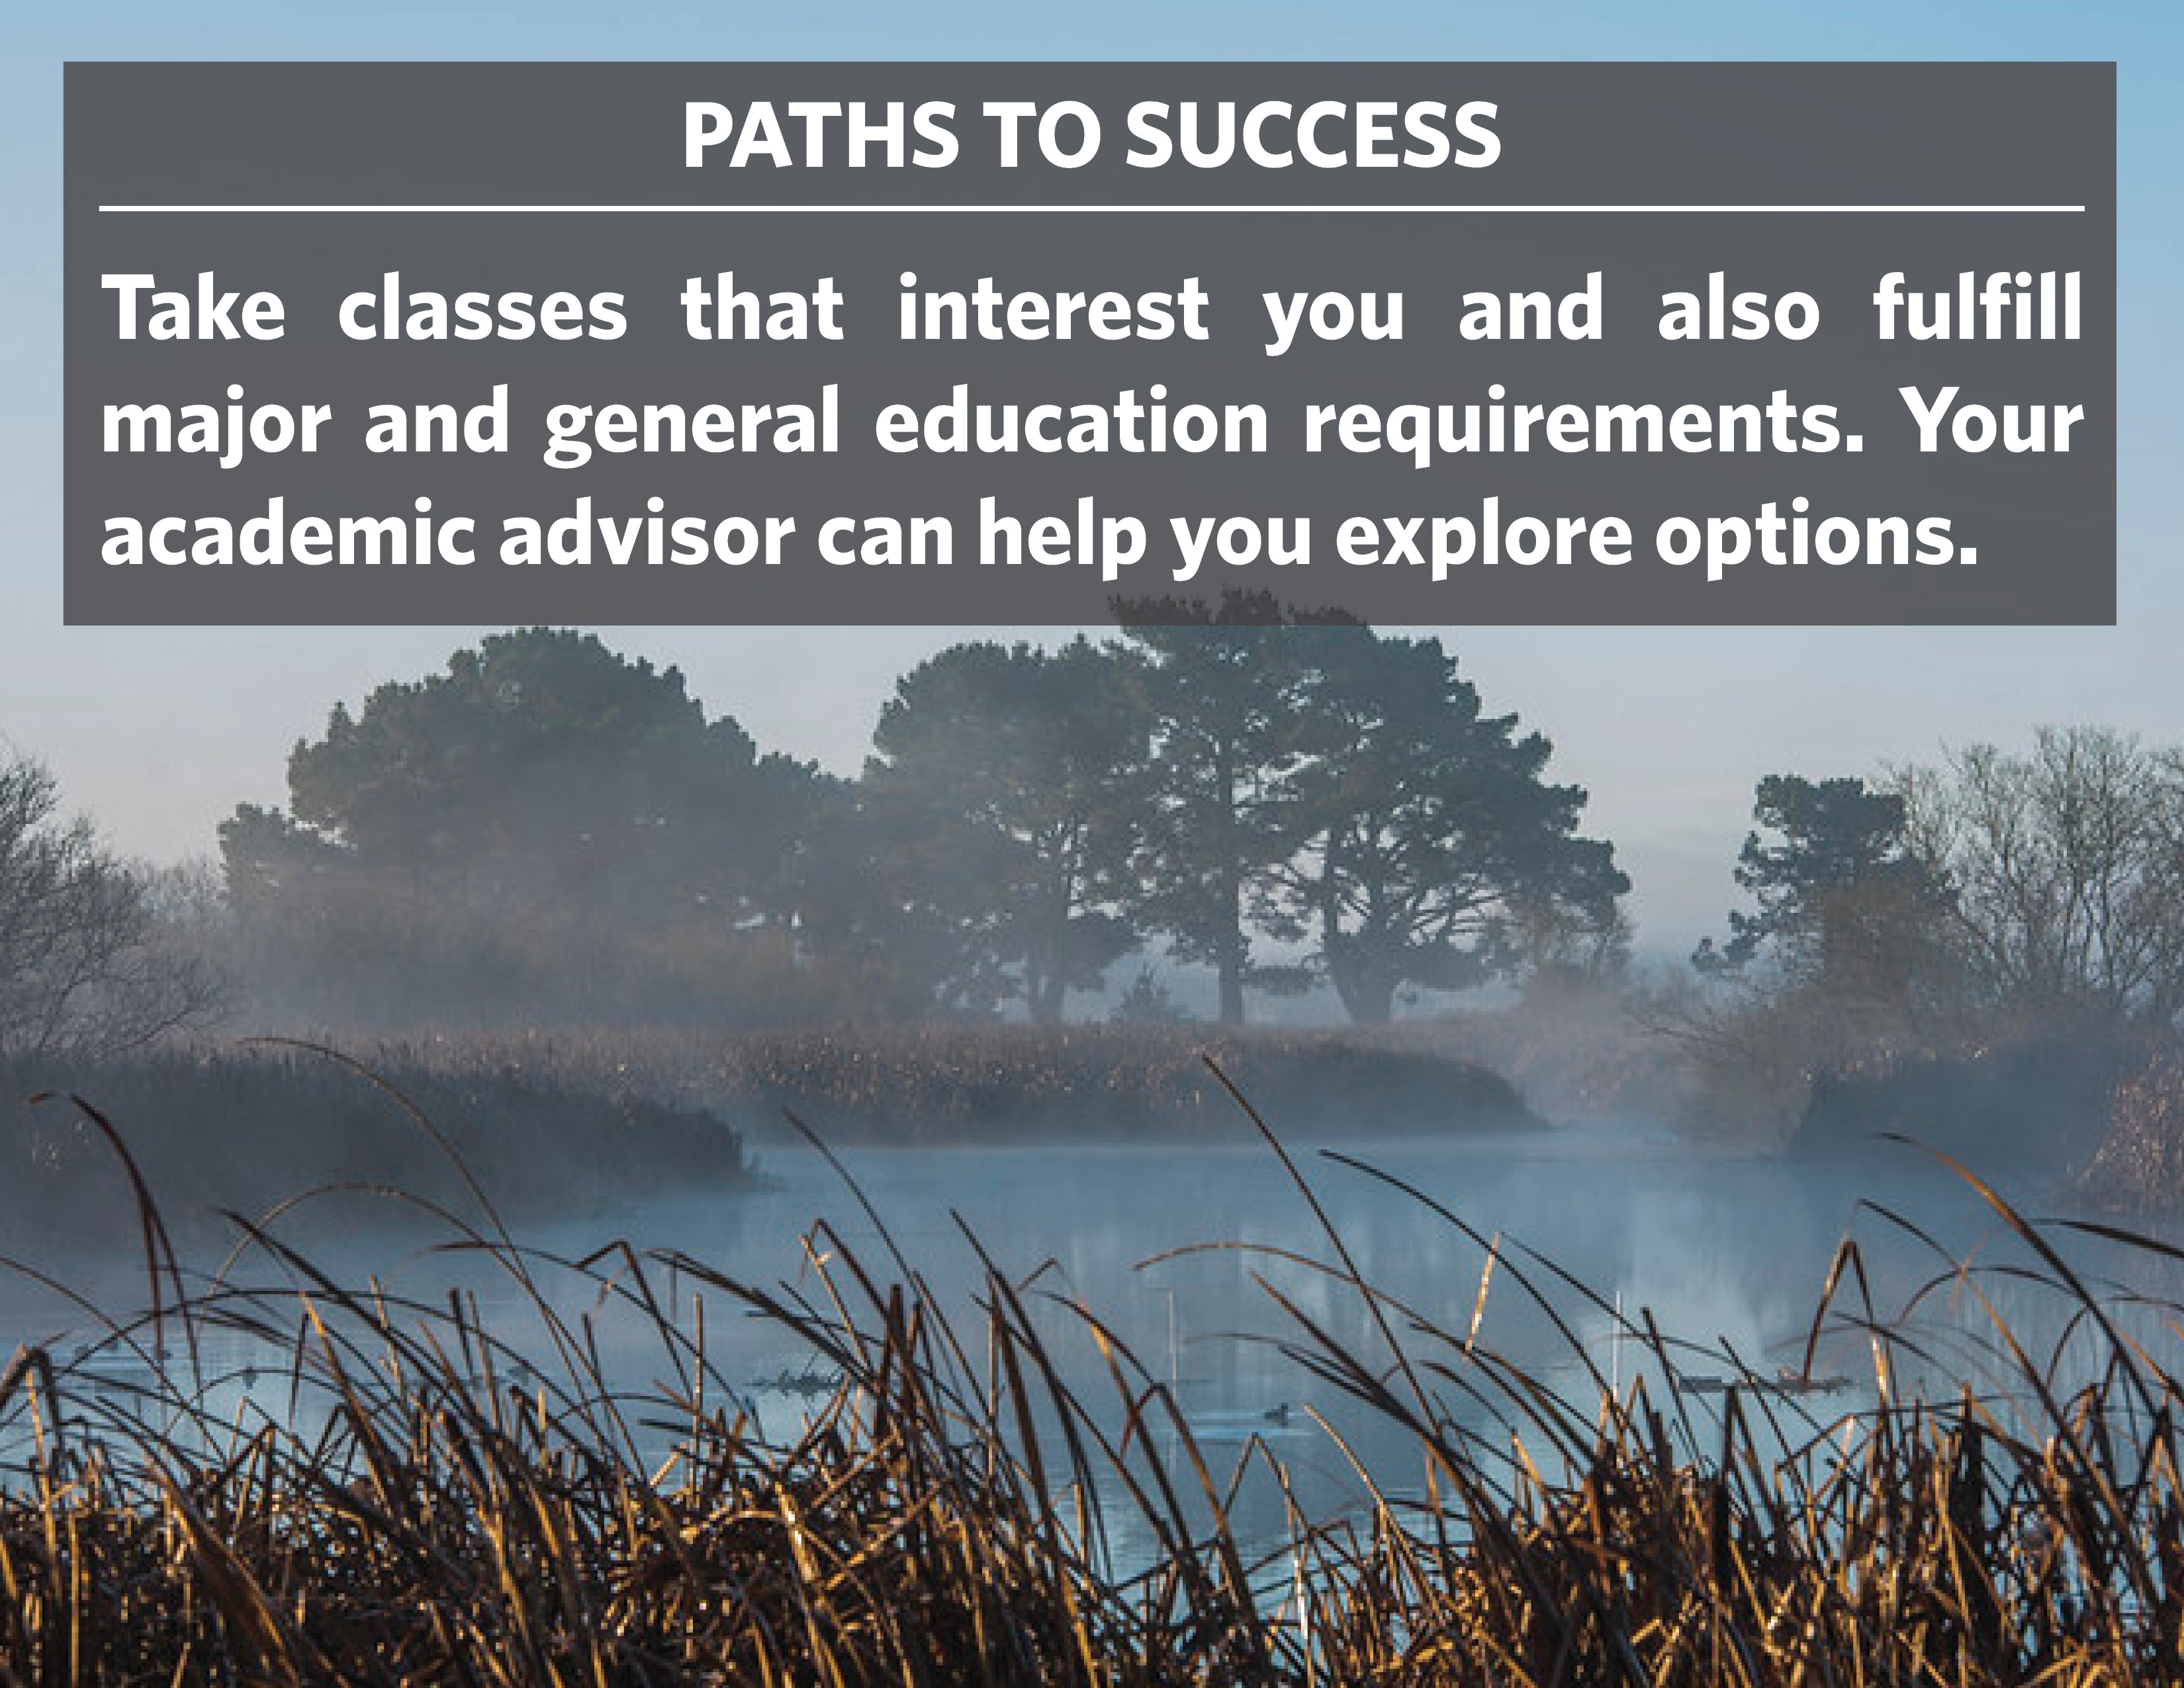 Paths to Success: Take classes that interest you and also fulfill major and general education requirements. Your academic advisor can help you explore options.